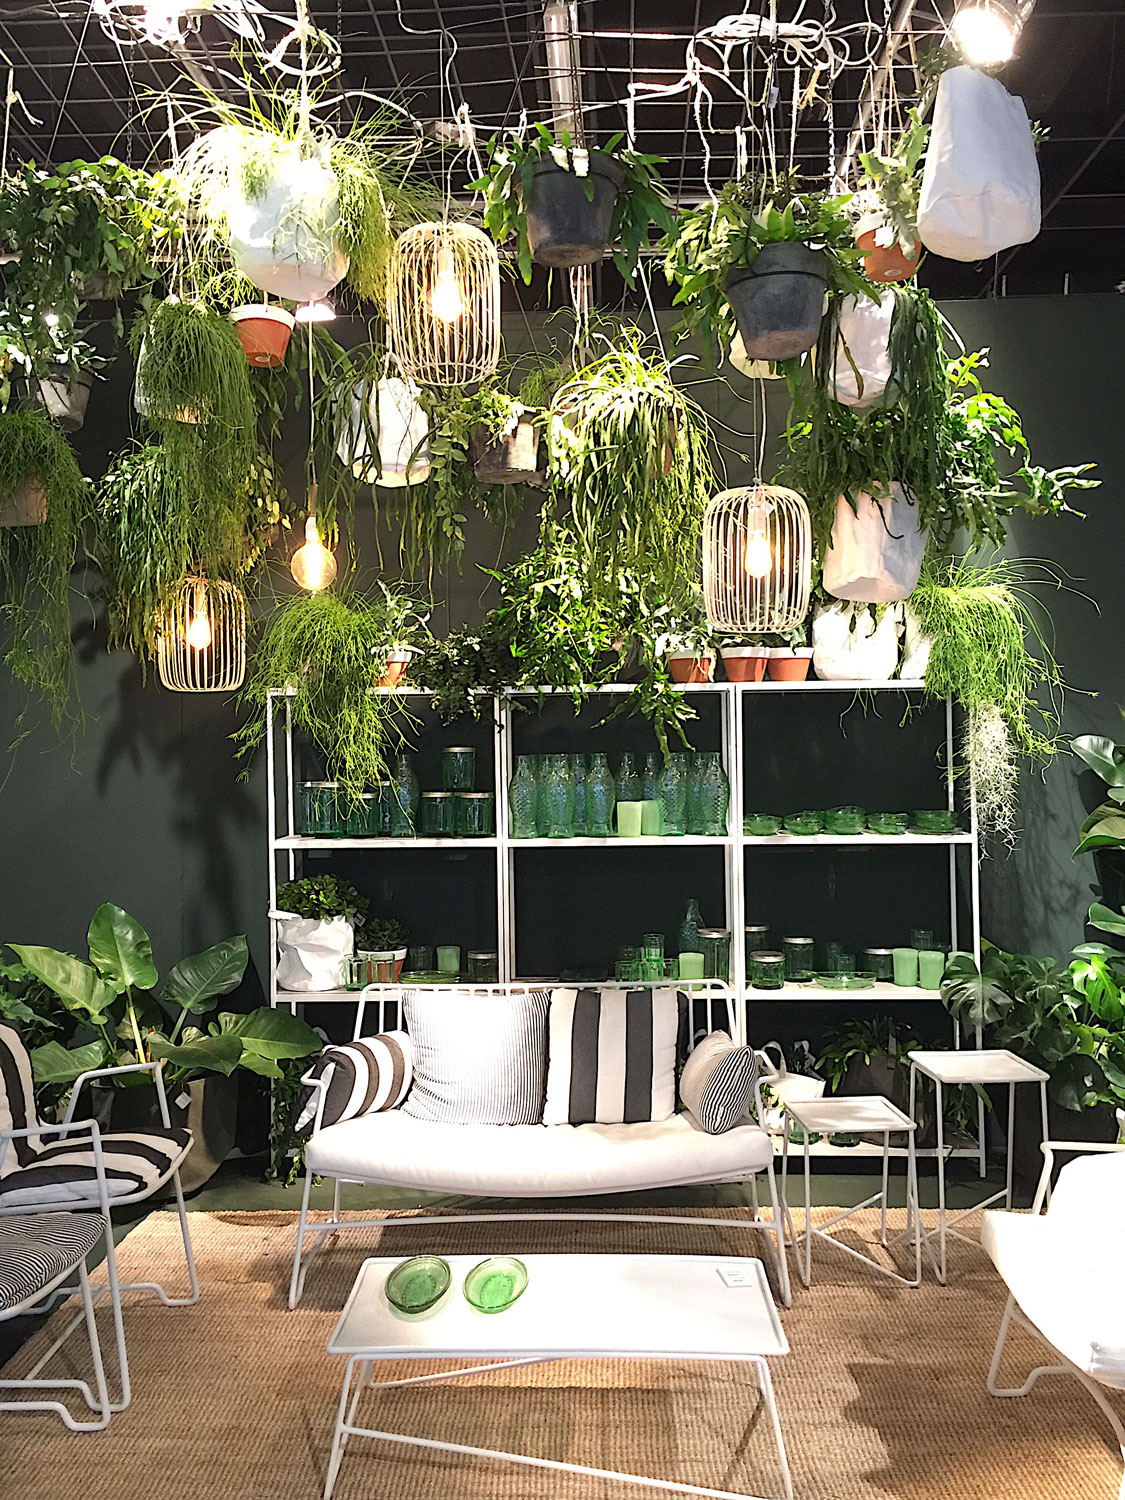 Imm Cologne 2017 trade fair interior trends plants